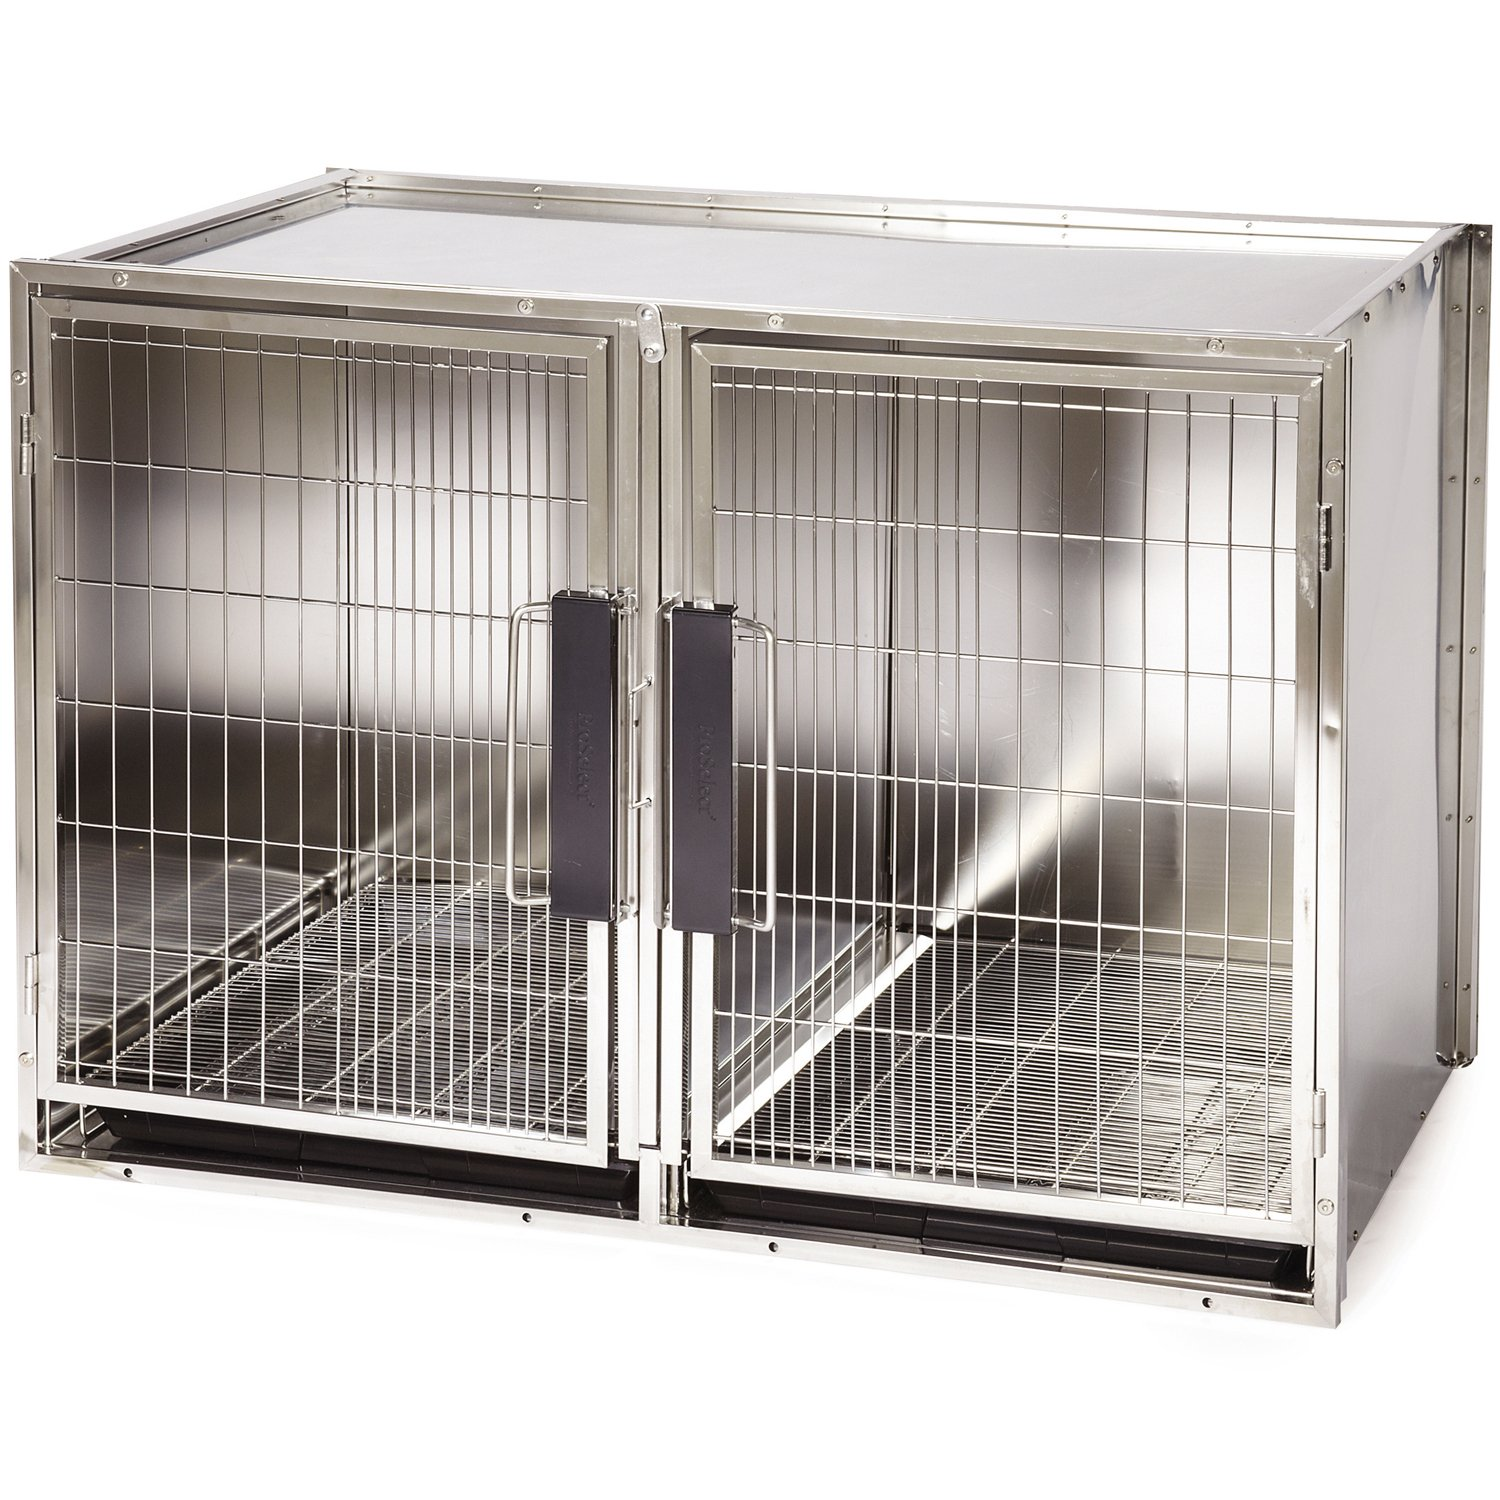 Amazon ProSelect Stainless Steel Modular Kennel Pet